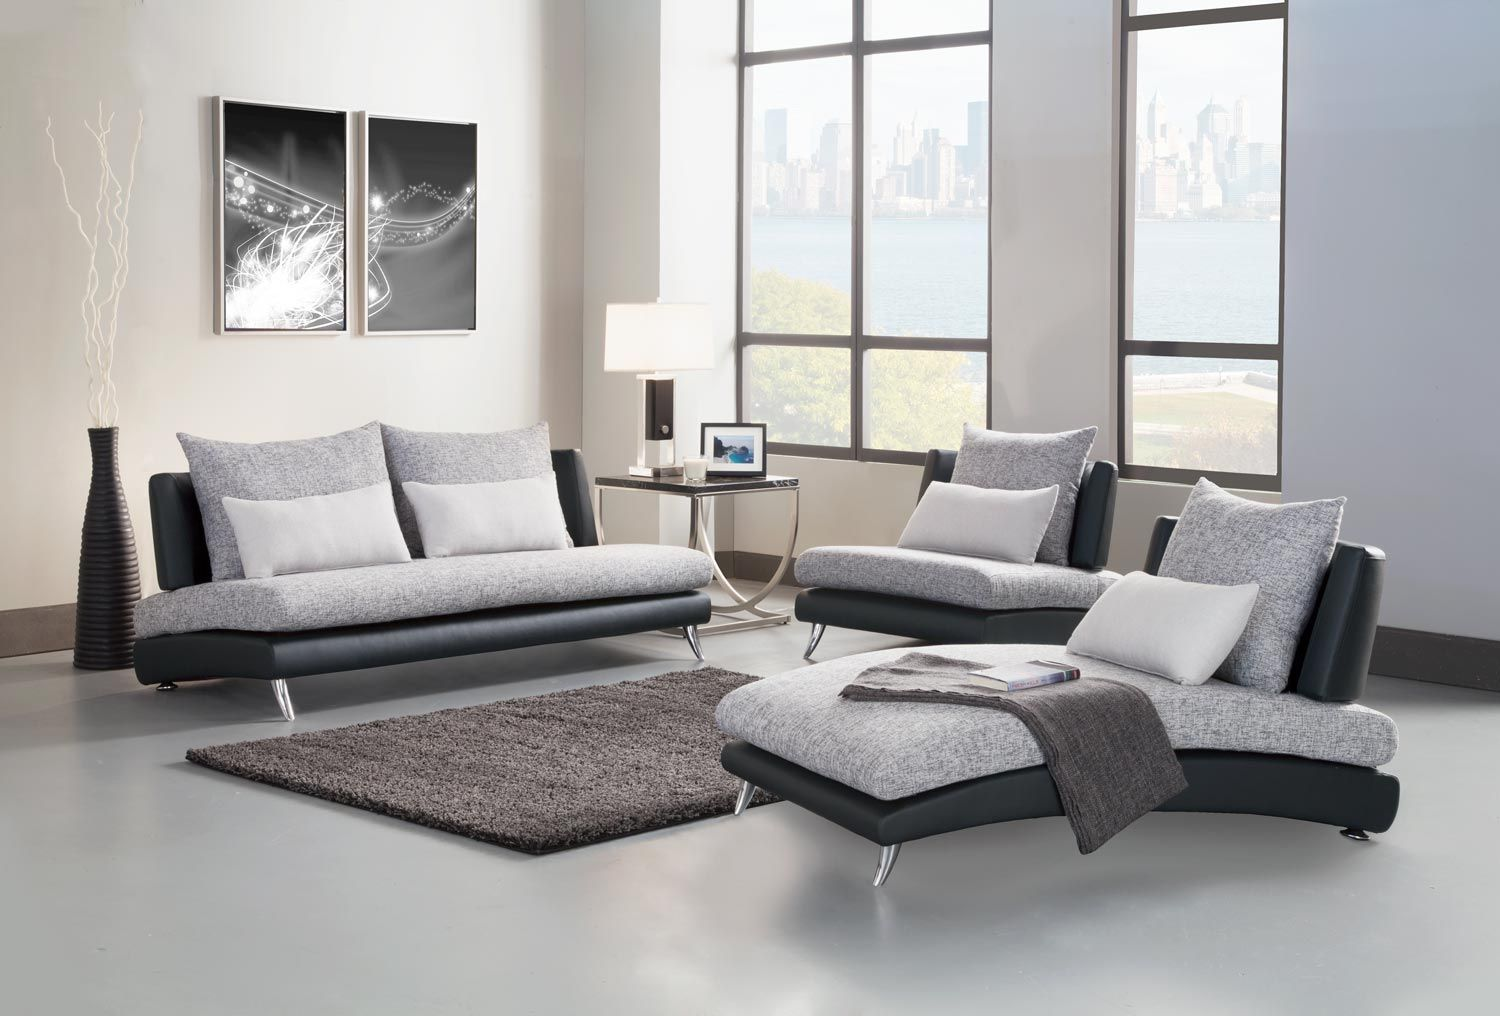 Homelegance Renton Sofa Set Grey Black Polyester Bi Cast. Wooden Living Room Furniture. Sectional Livg Room Sets As Wide Furniture Sumpto Table And. Home Design and Interior Design Gallery Of Awesome Ideas For